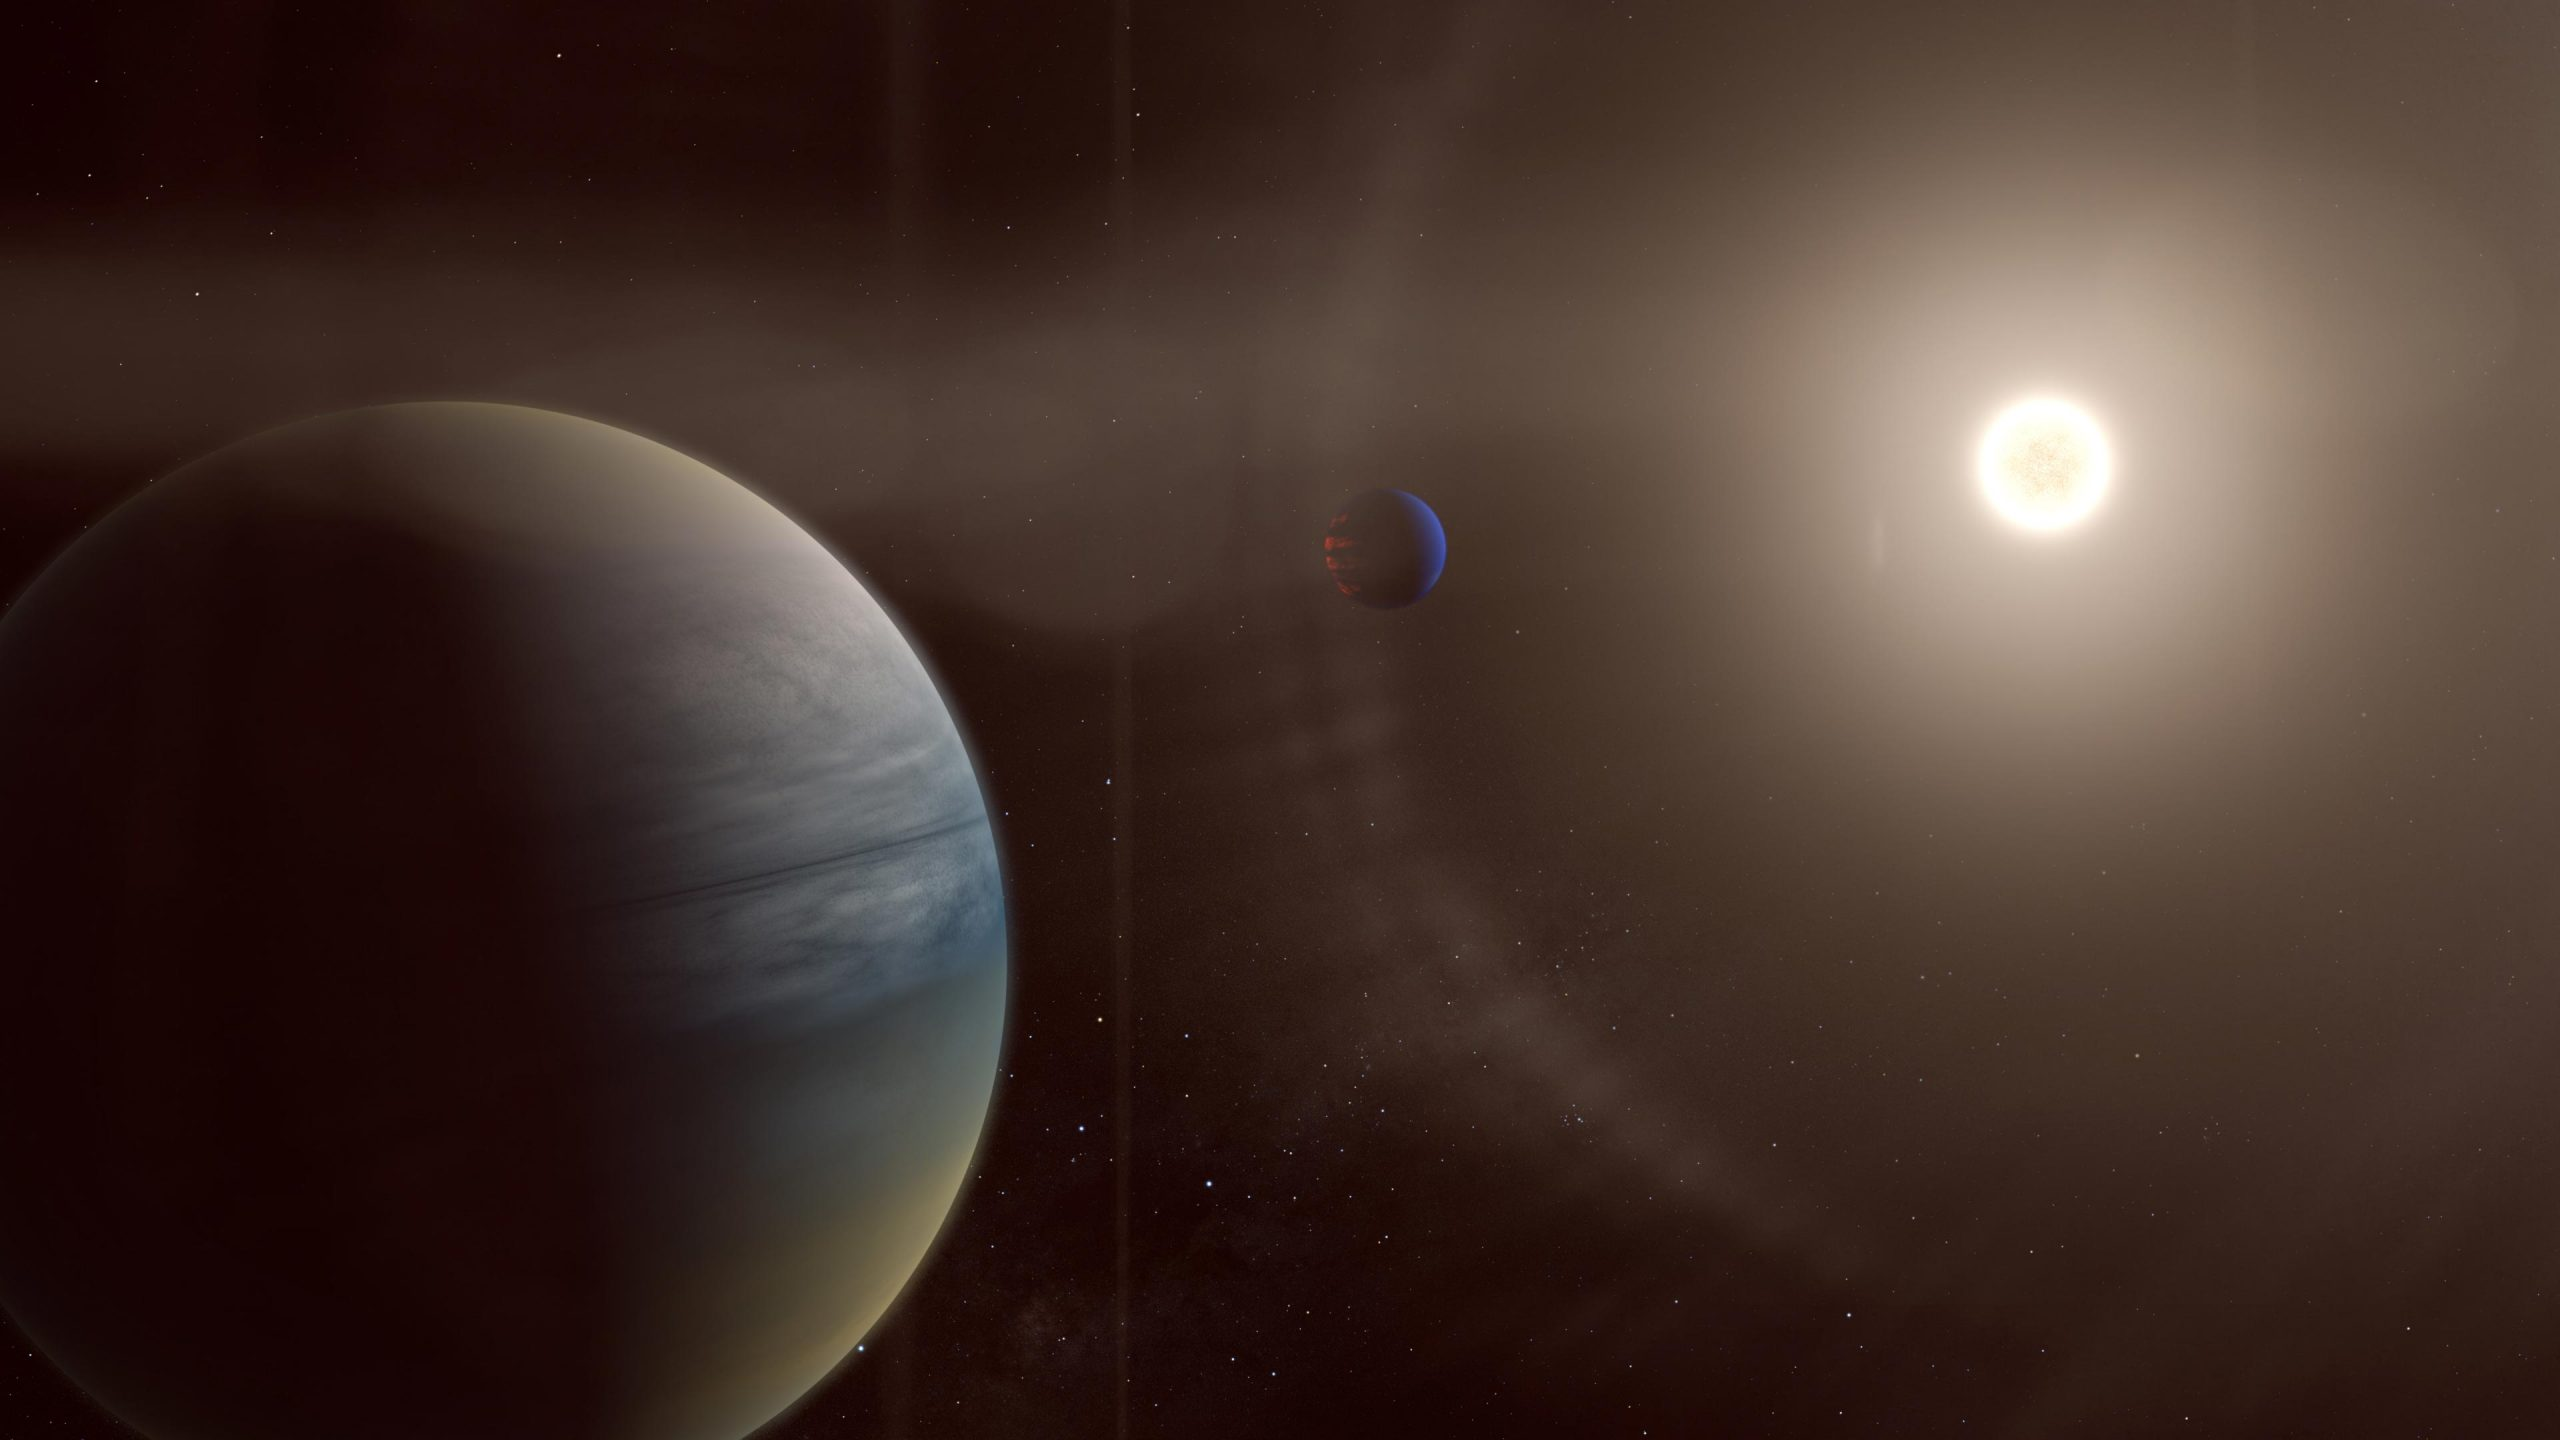 Out of This World Discovery by Citizen Scientists: Two Gaseous Planets Around a Bright Sun-Like Star